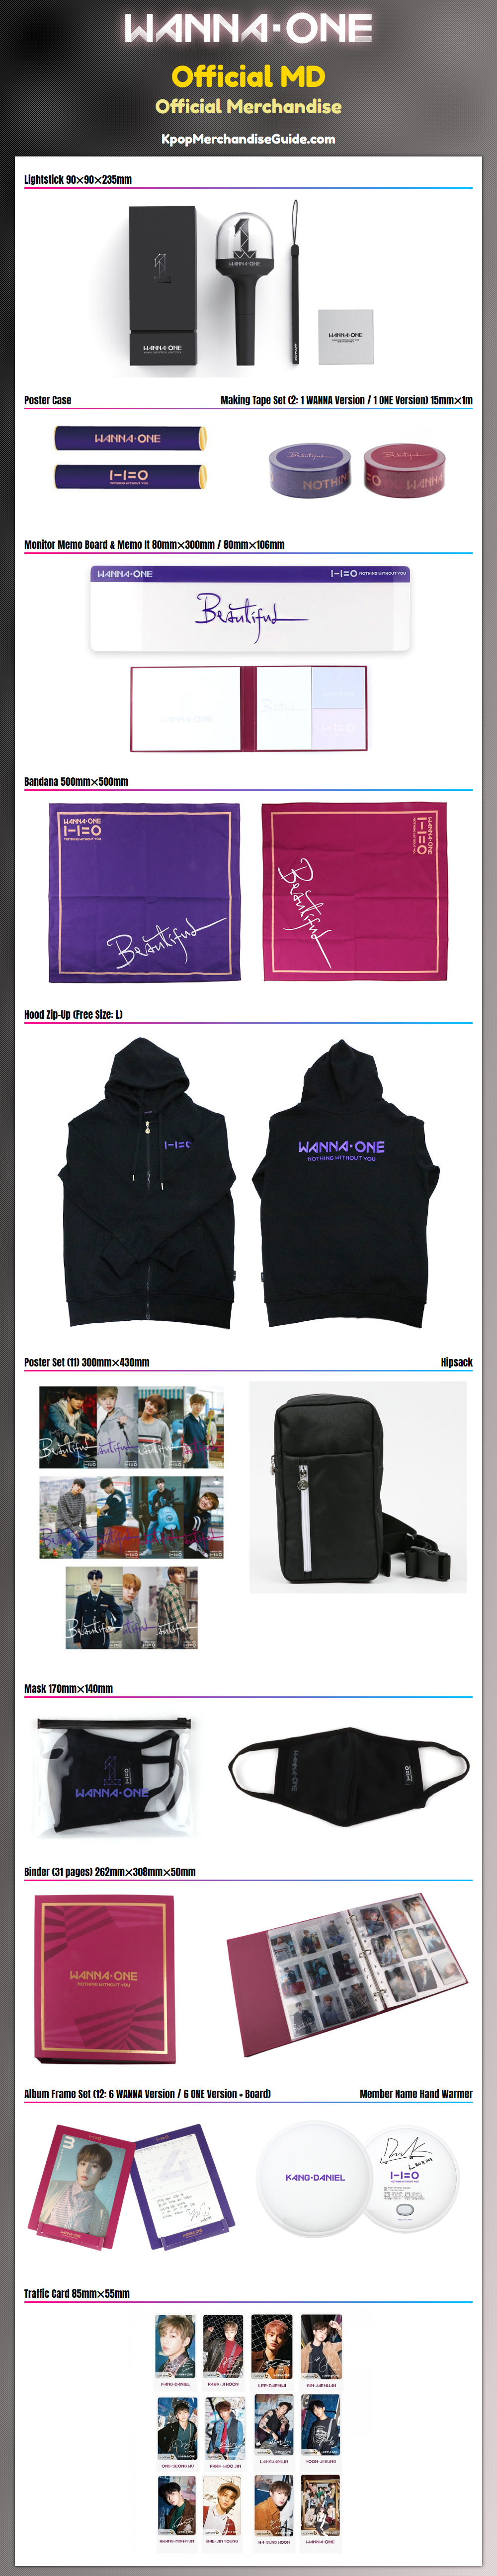 Wanna One Official MD Goods